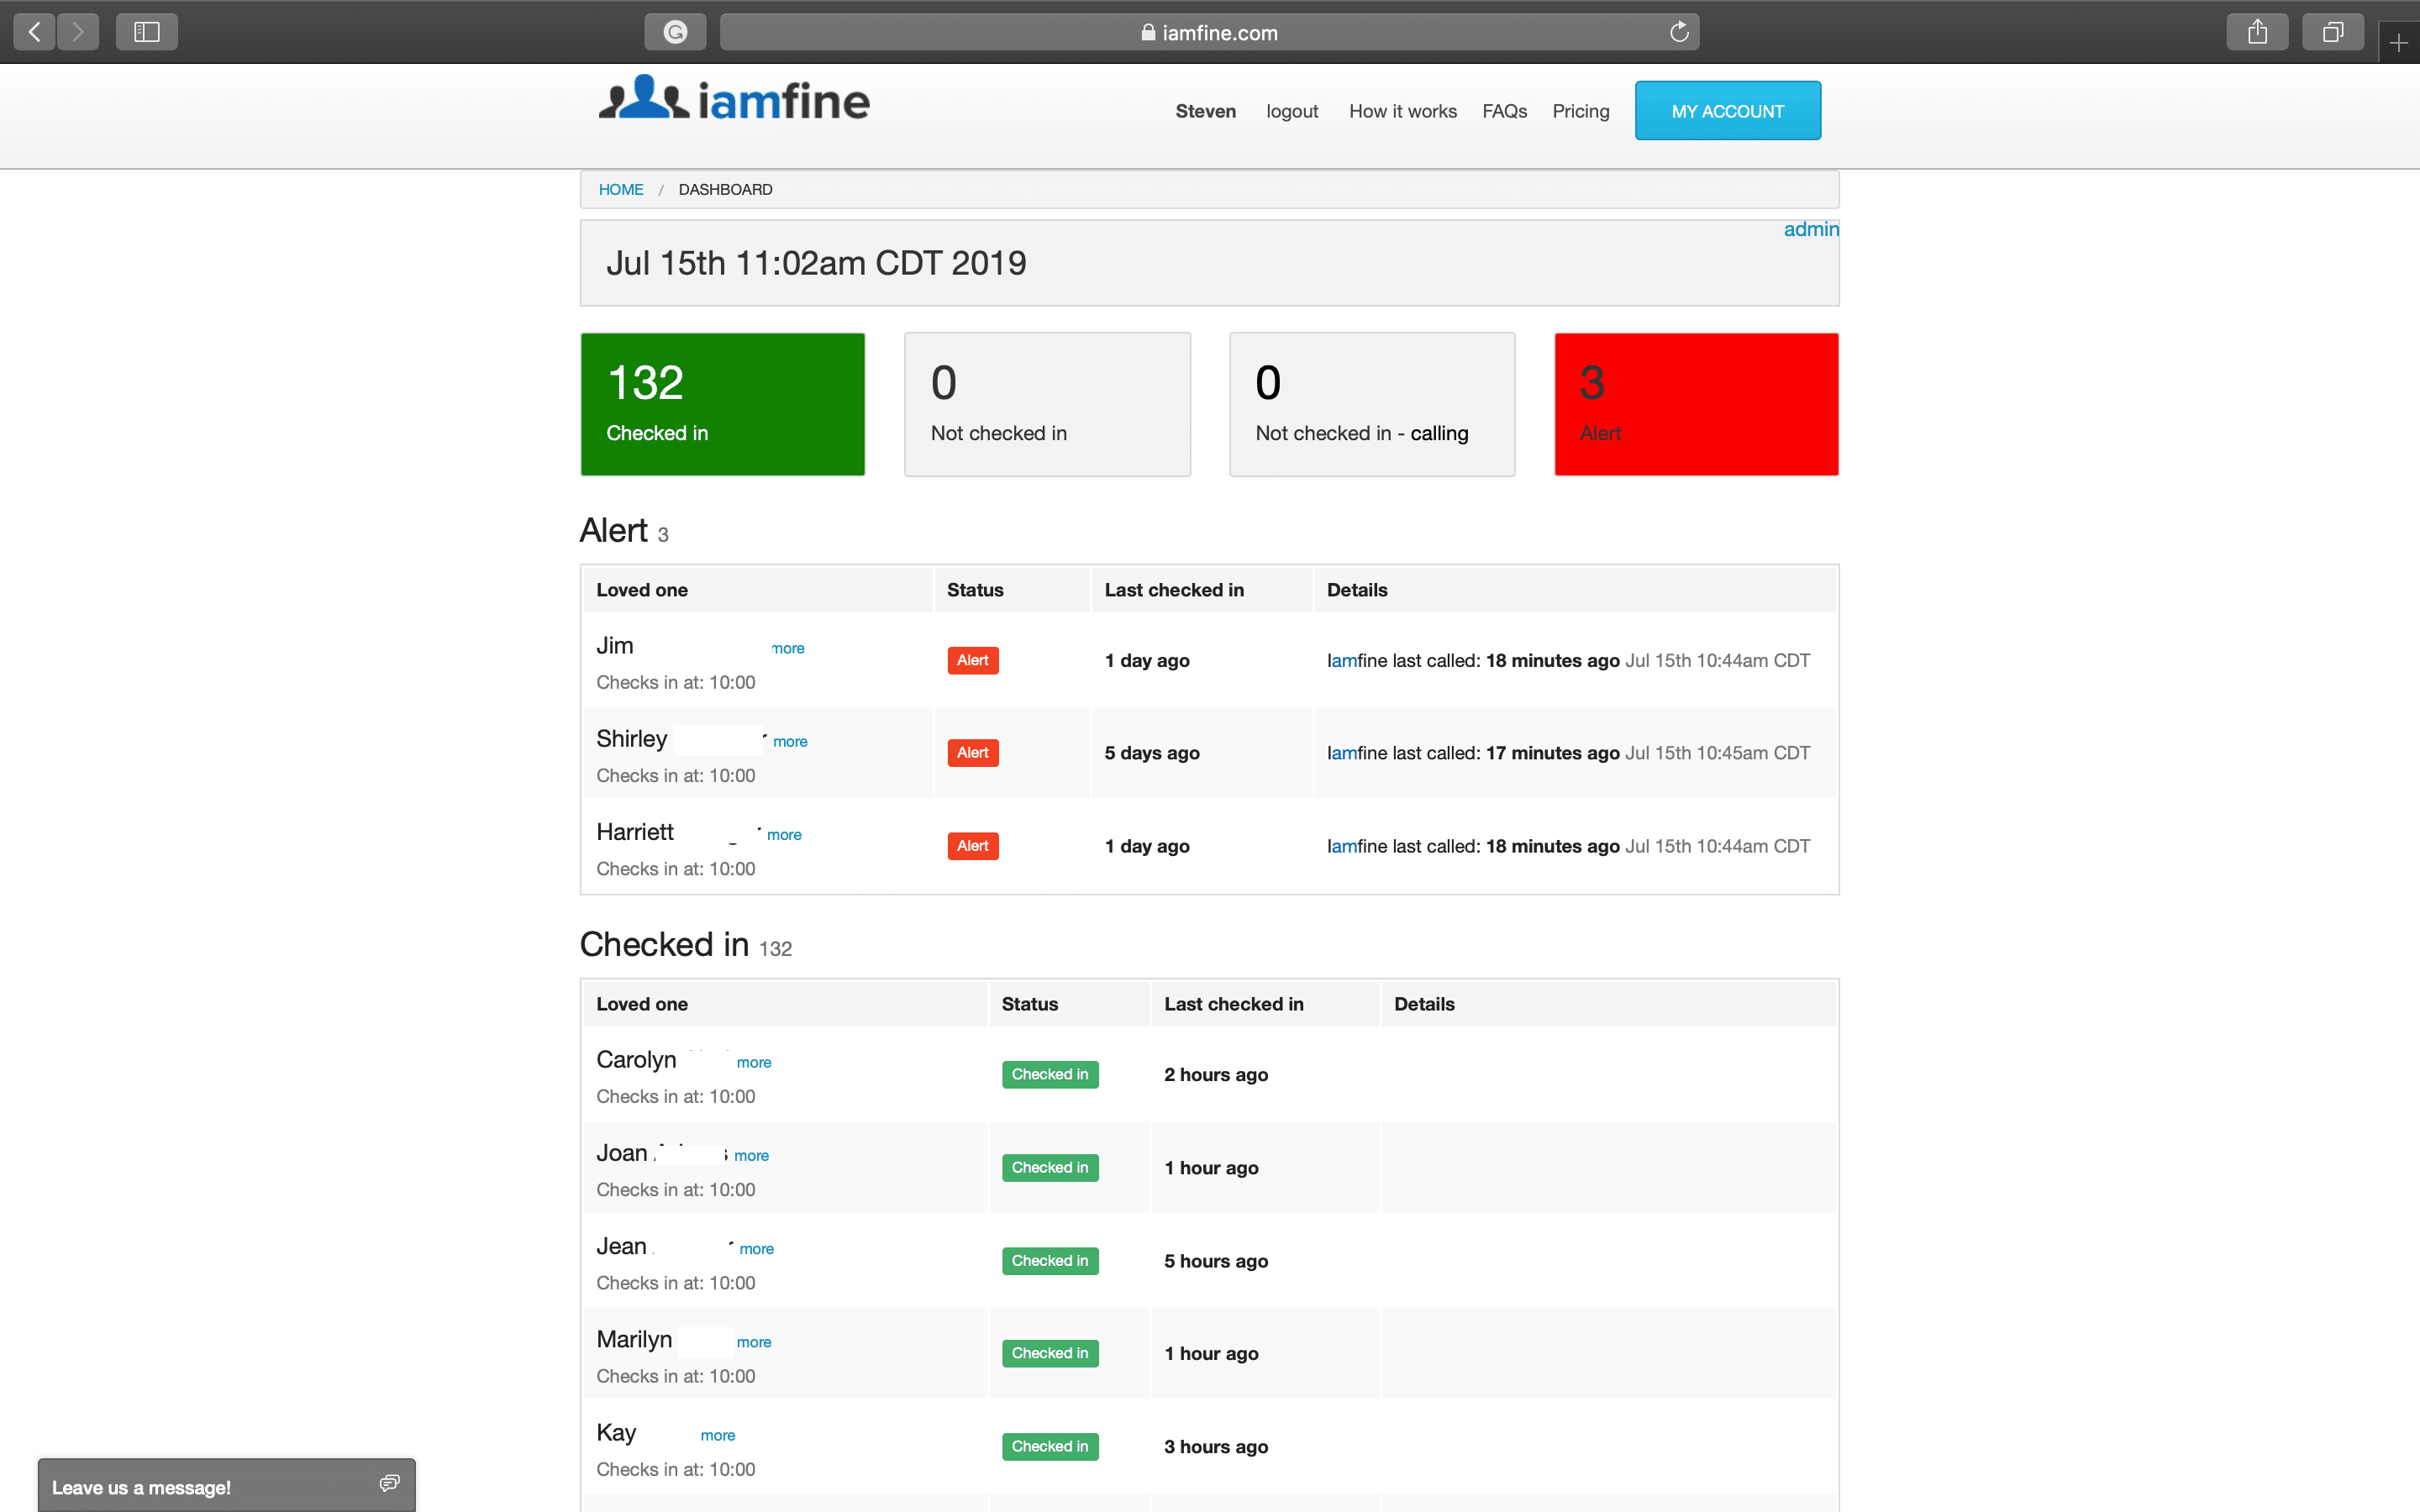 Dashboard for multiple users of Iamfine.com